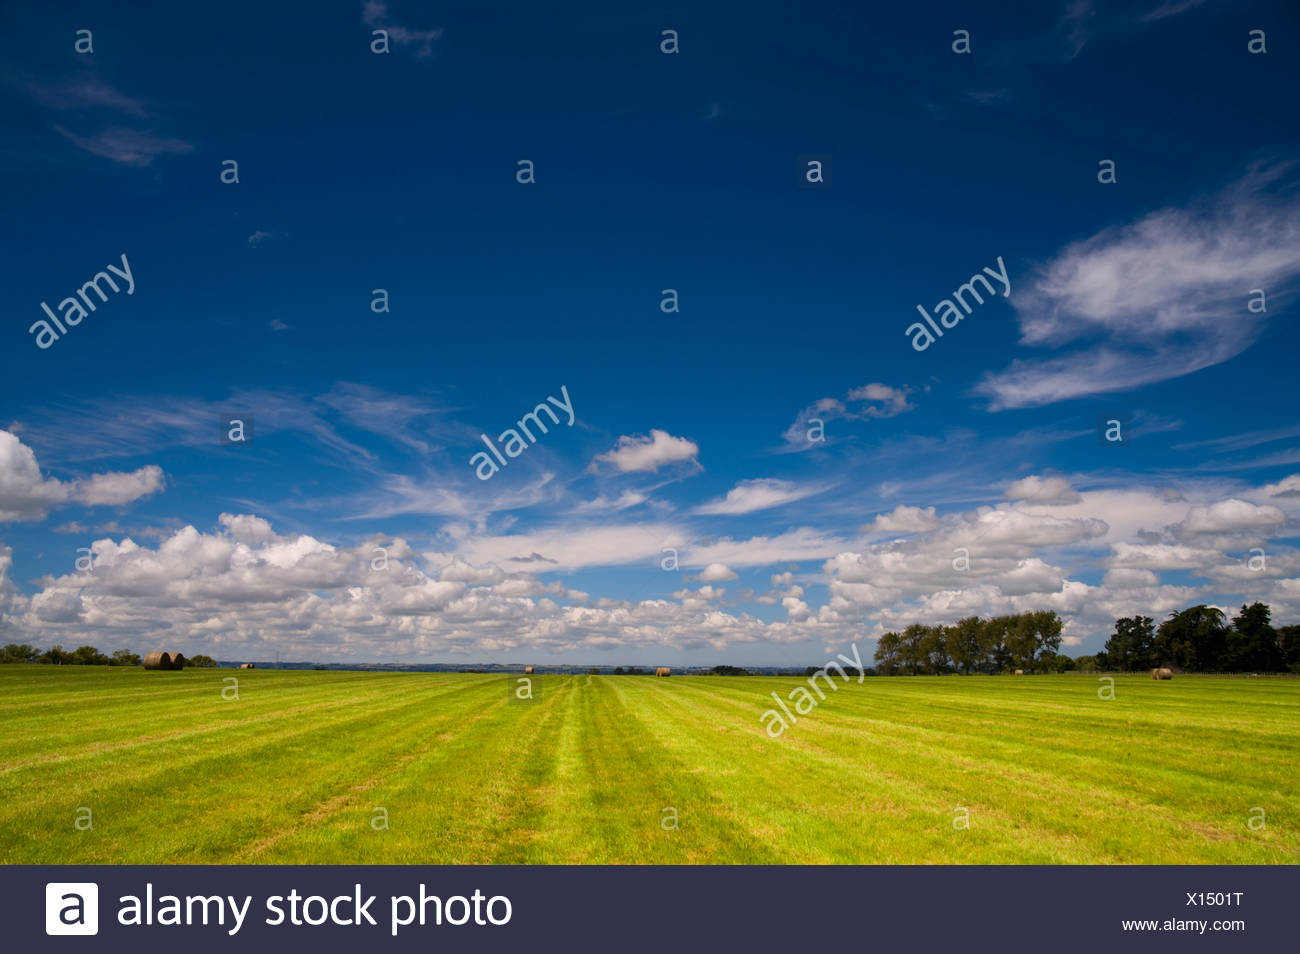 New Zealand; A Farm Field - Stock Image